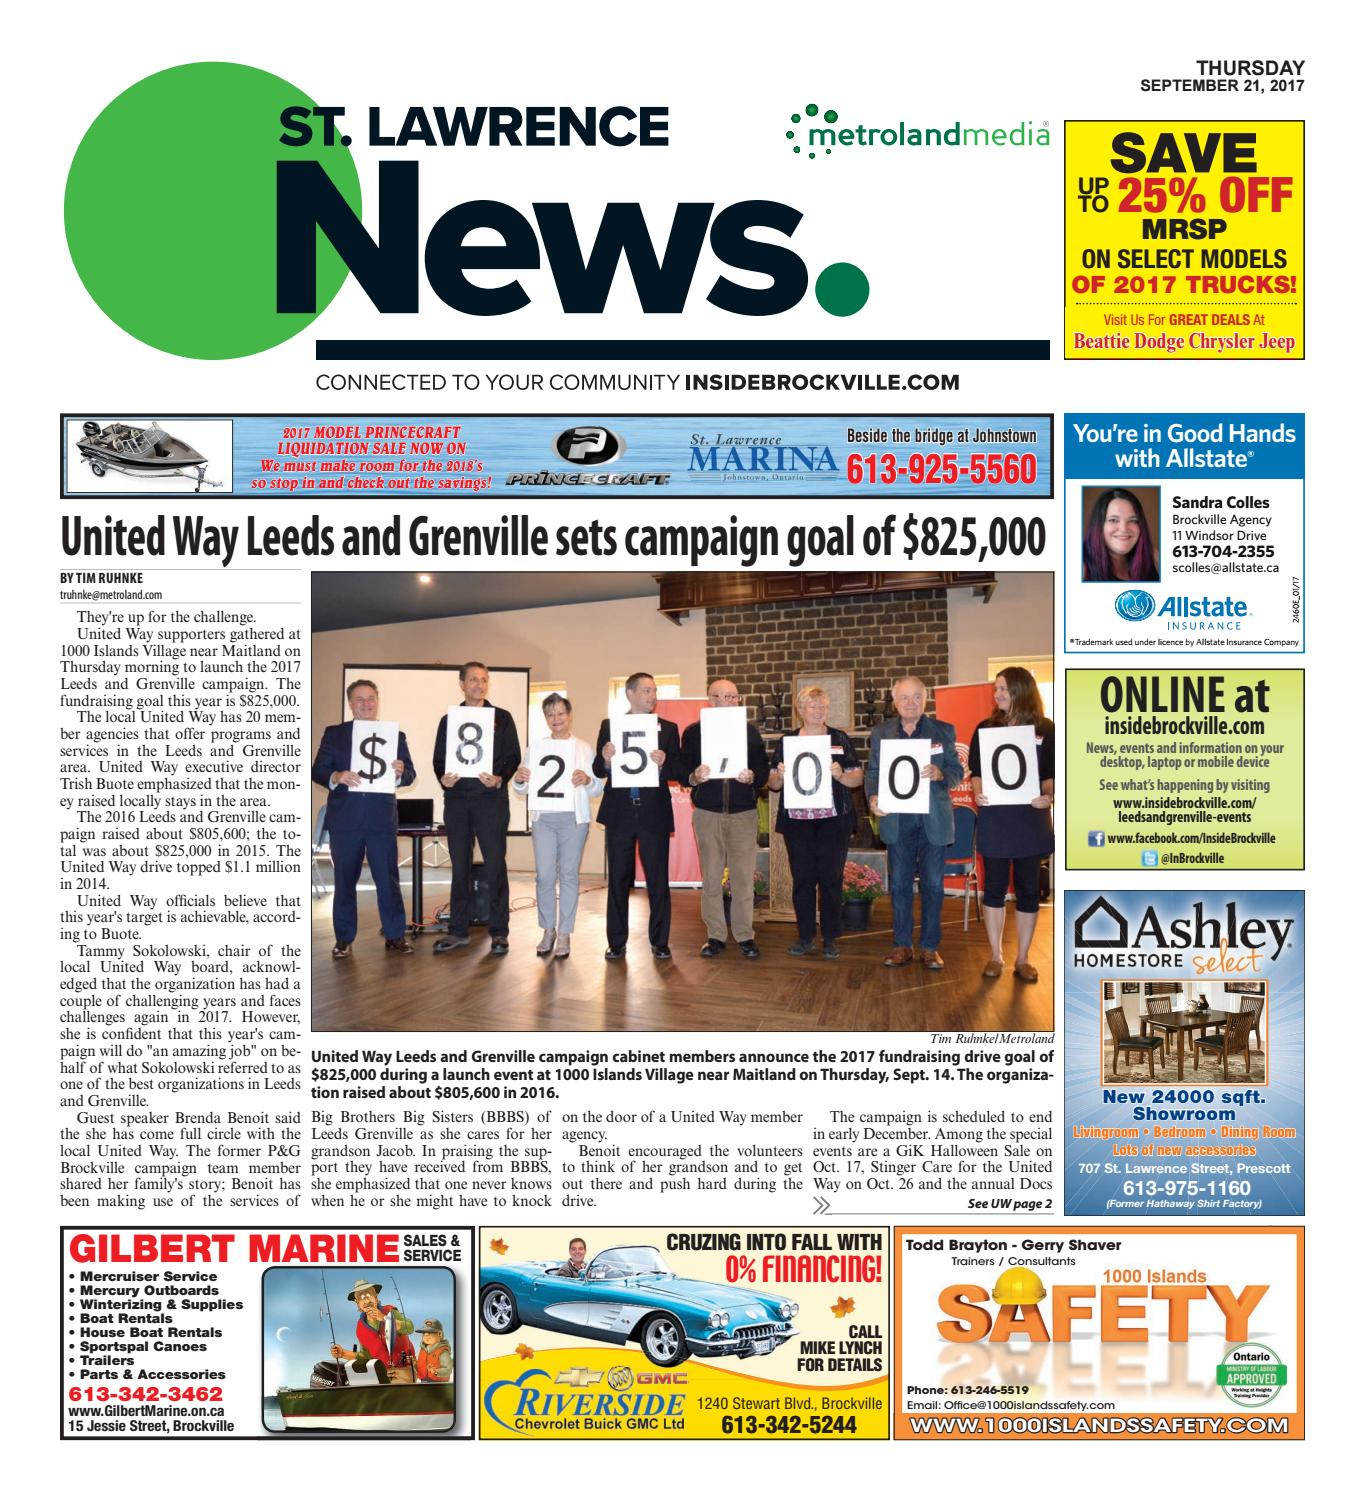 Stlawrence092117 by Metroland East - St  Lawrence News - issuu